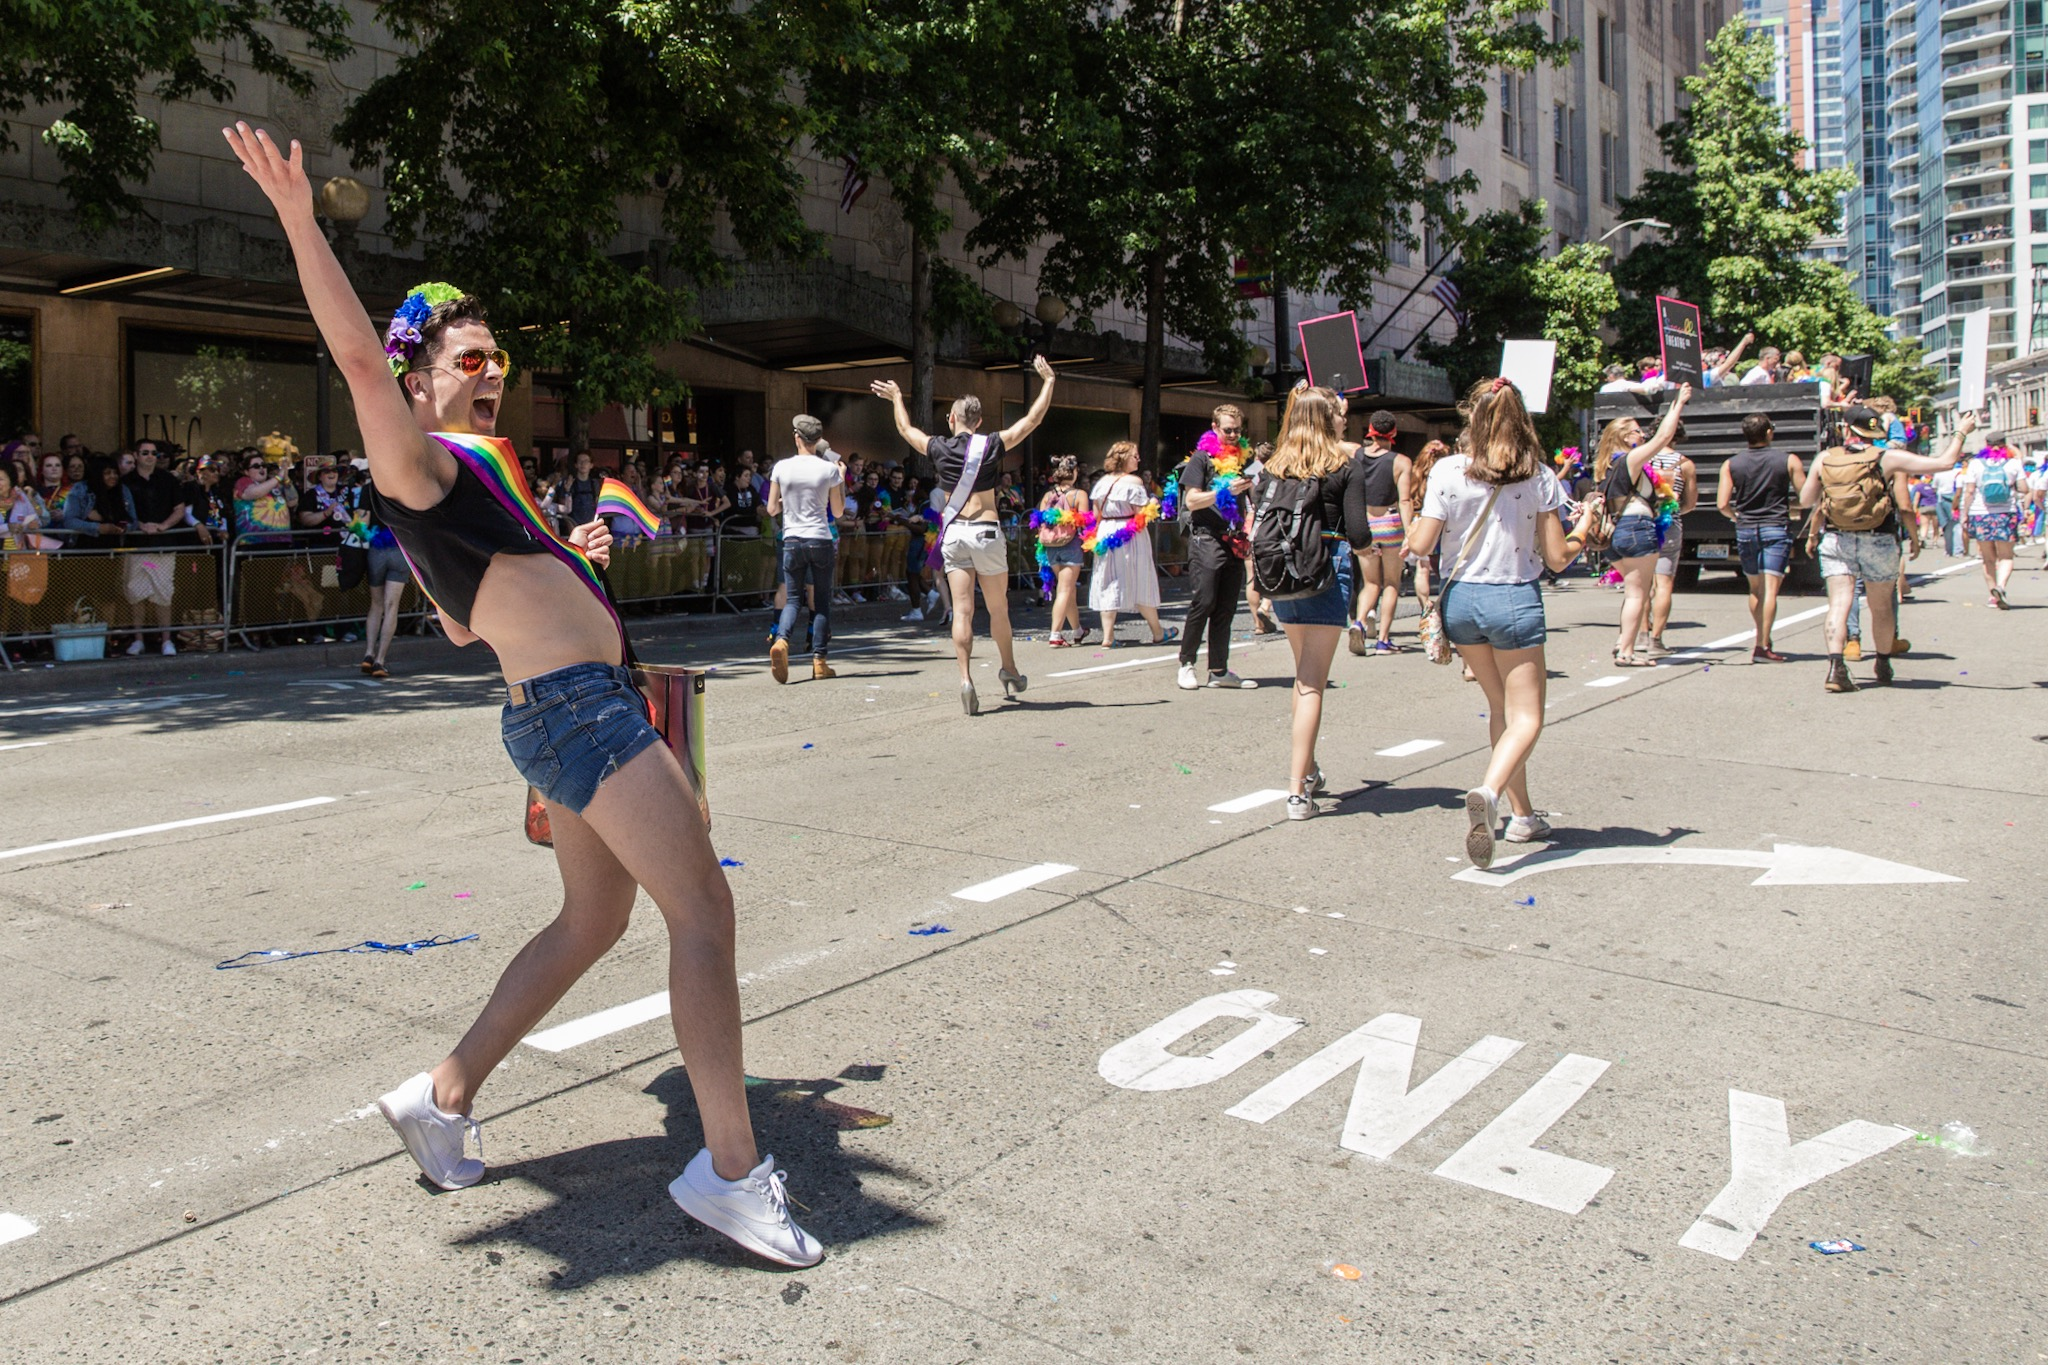 "2018 Seattle Pride Parade. We're celebrating what would have been the weekend of the{&nbsp;}<a  href=""https://www.seattlepride.org/"" target=""_blank"" title=""https://www.seattlepride.org/"">Seattle Pride Parade</a>{&nbsp;}with a look back at parades past and remembering all the joy and love they have brought our city! If you're missing it as much as we are - join in virtually!{&nbsp;}<a  href=""https://www.seattlepride.org/events/together-for-pride-seattles-virtual-pride"" target=""_blank"" title=""https://www.seattlepride.org/events/together-for-pride-seattles-virtual-pride"">Together For Pride - Seattle's Virtual Pride</a>{&nbsp;}event is being held Friday to Sunday, June 26-28, with speakers, performances and activities. See you next year! (Image: Sunita Martini / Seattle Refined)"